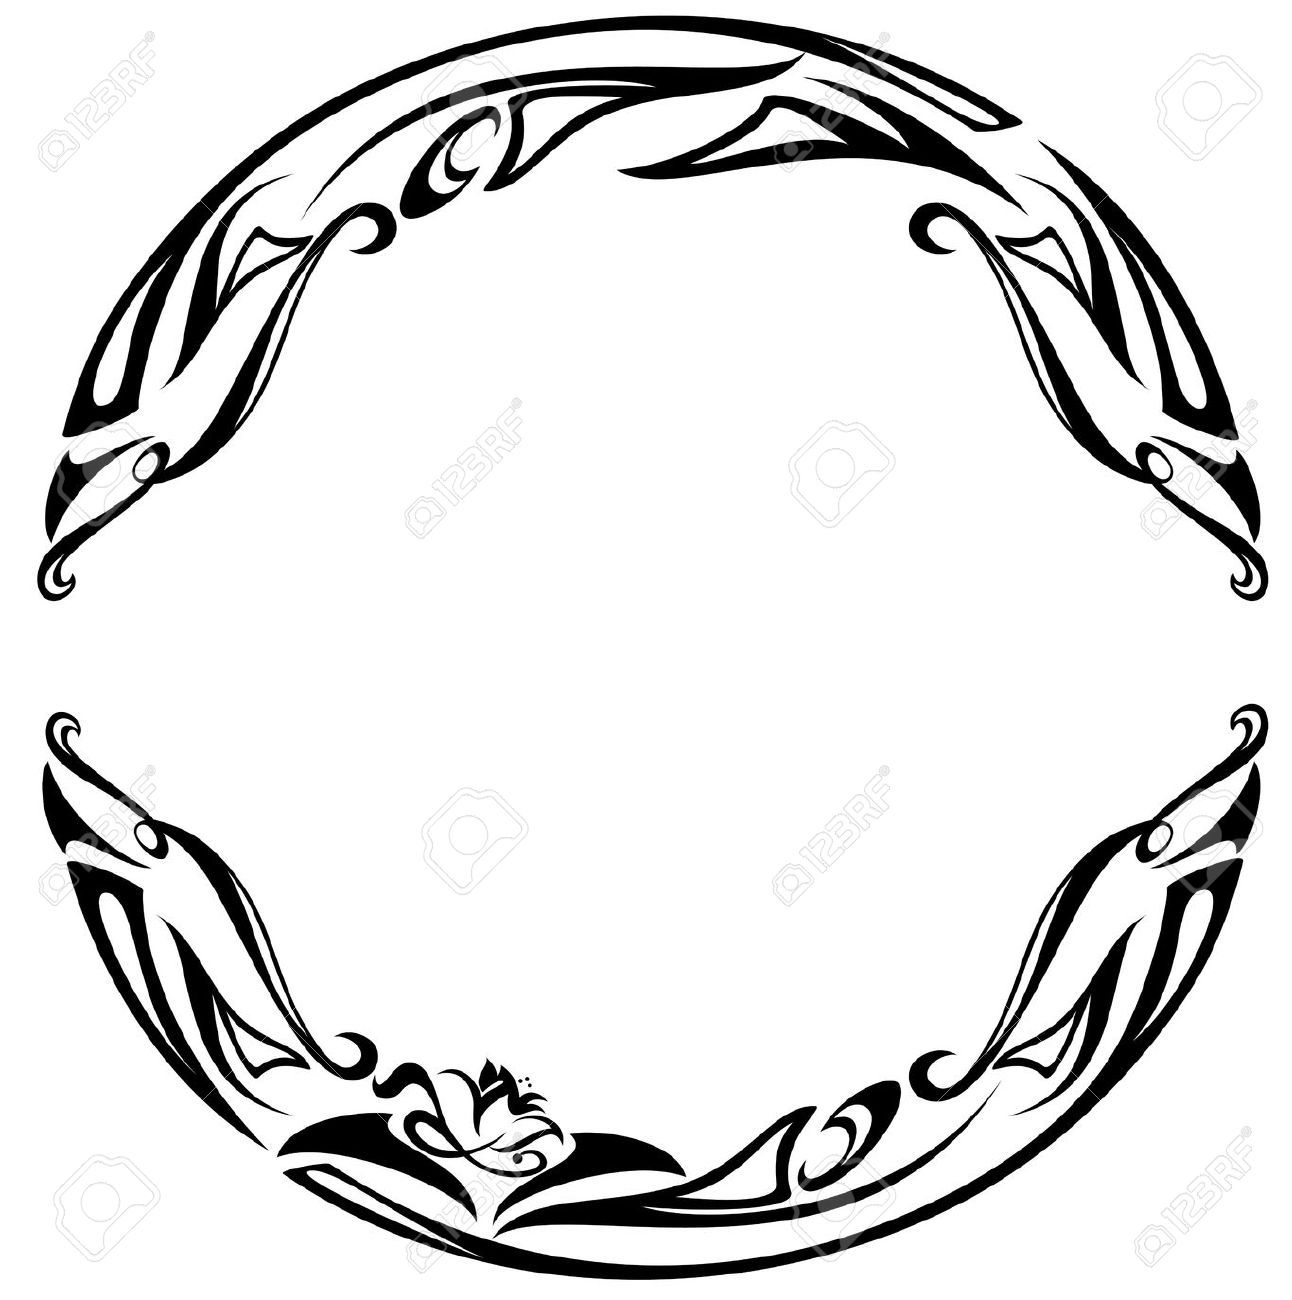 Art Nouveau Style Round Frame Black And White Abstract Floral